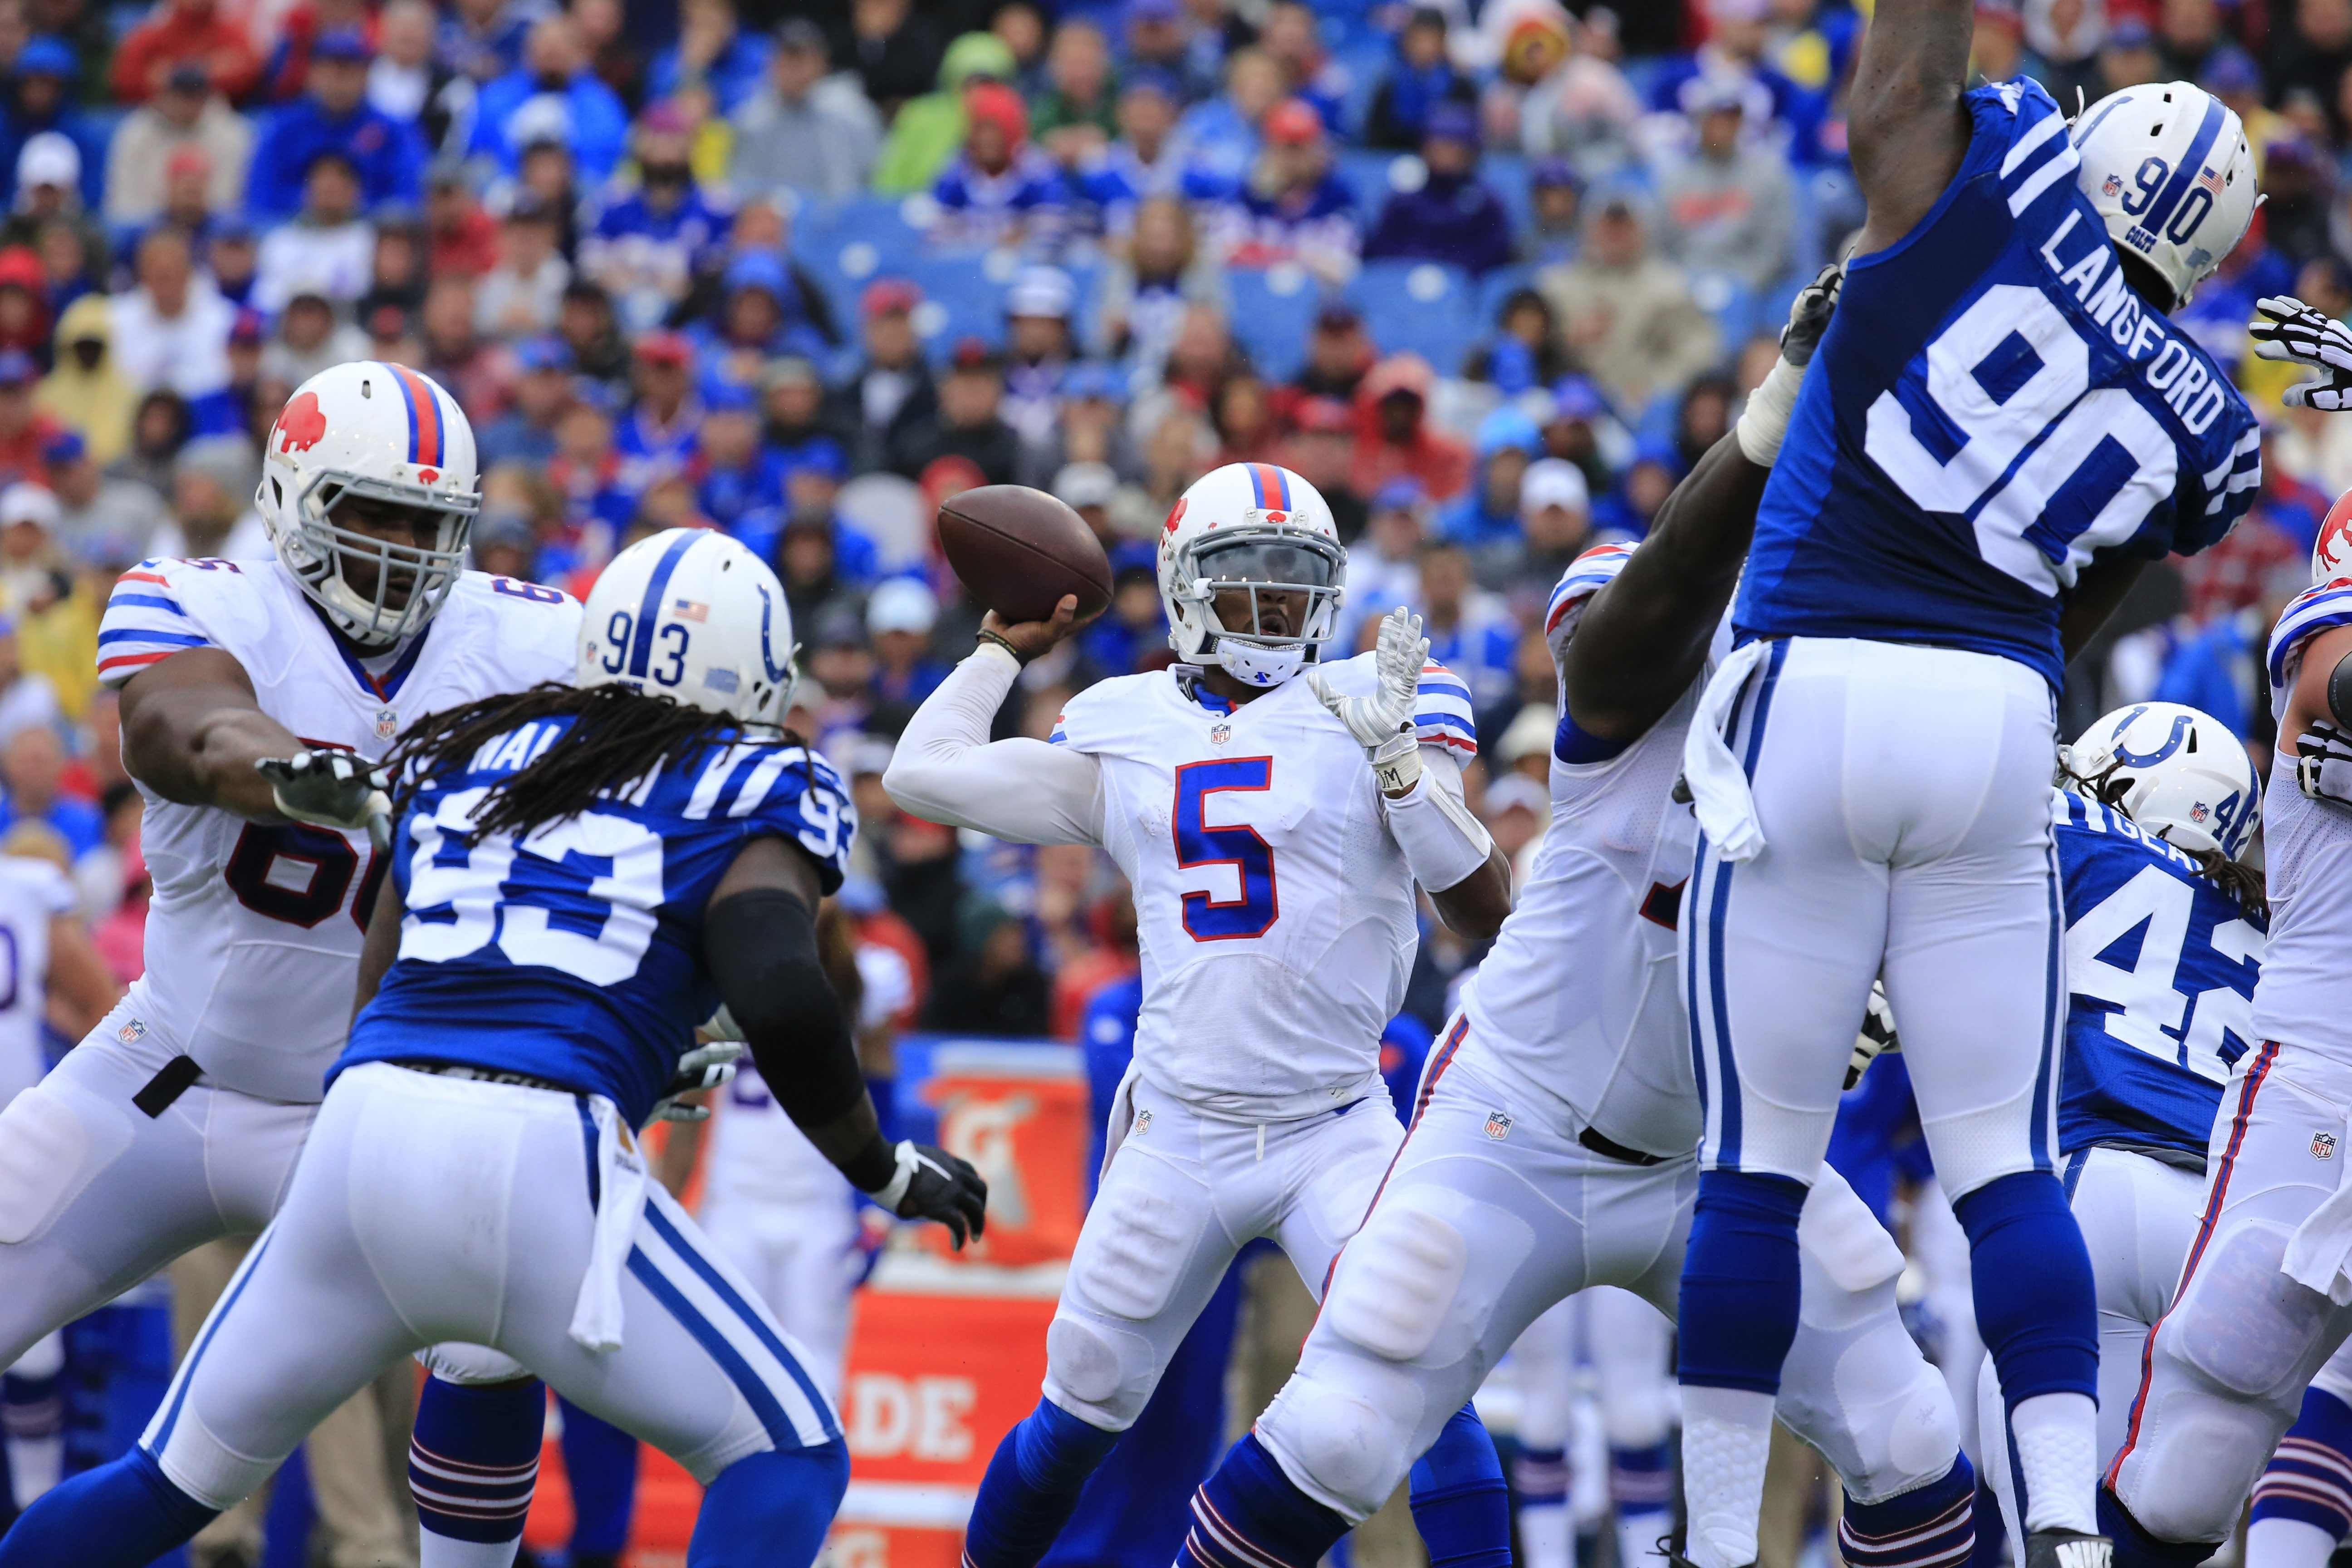 Buffalo Bills quarterback Tyrod Taylor throws against the Indianapolis Colts during the third quarter at Ralph Wilson Stadium on Sunday, Sept. 13, 2015.  (Harry Scull Jr./Buffalo News)